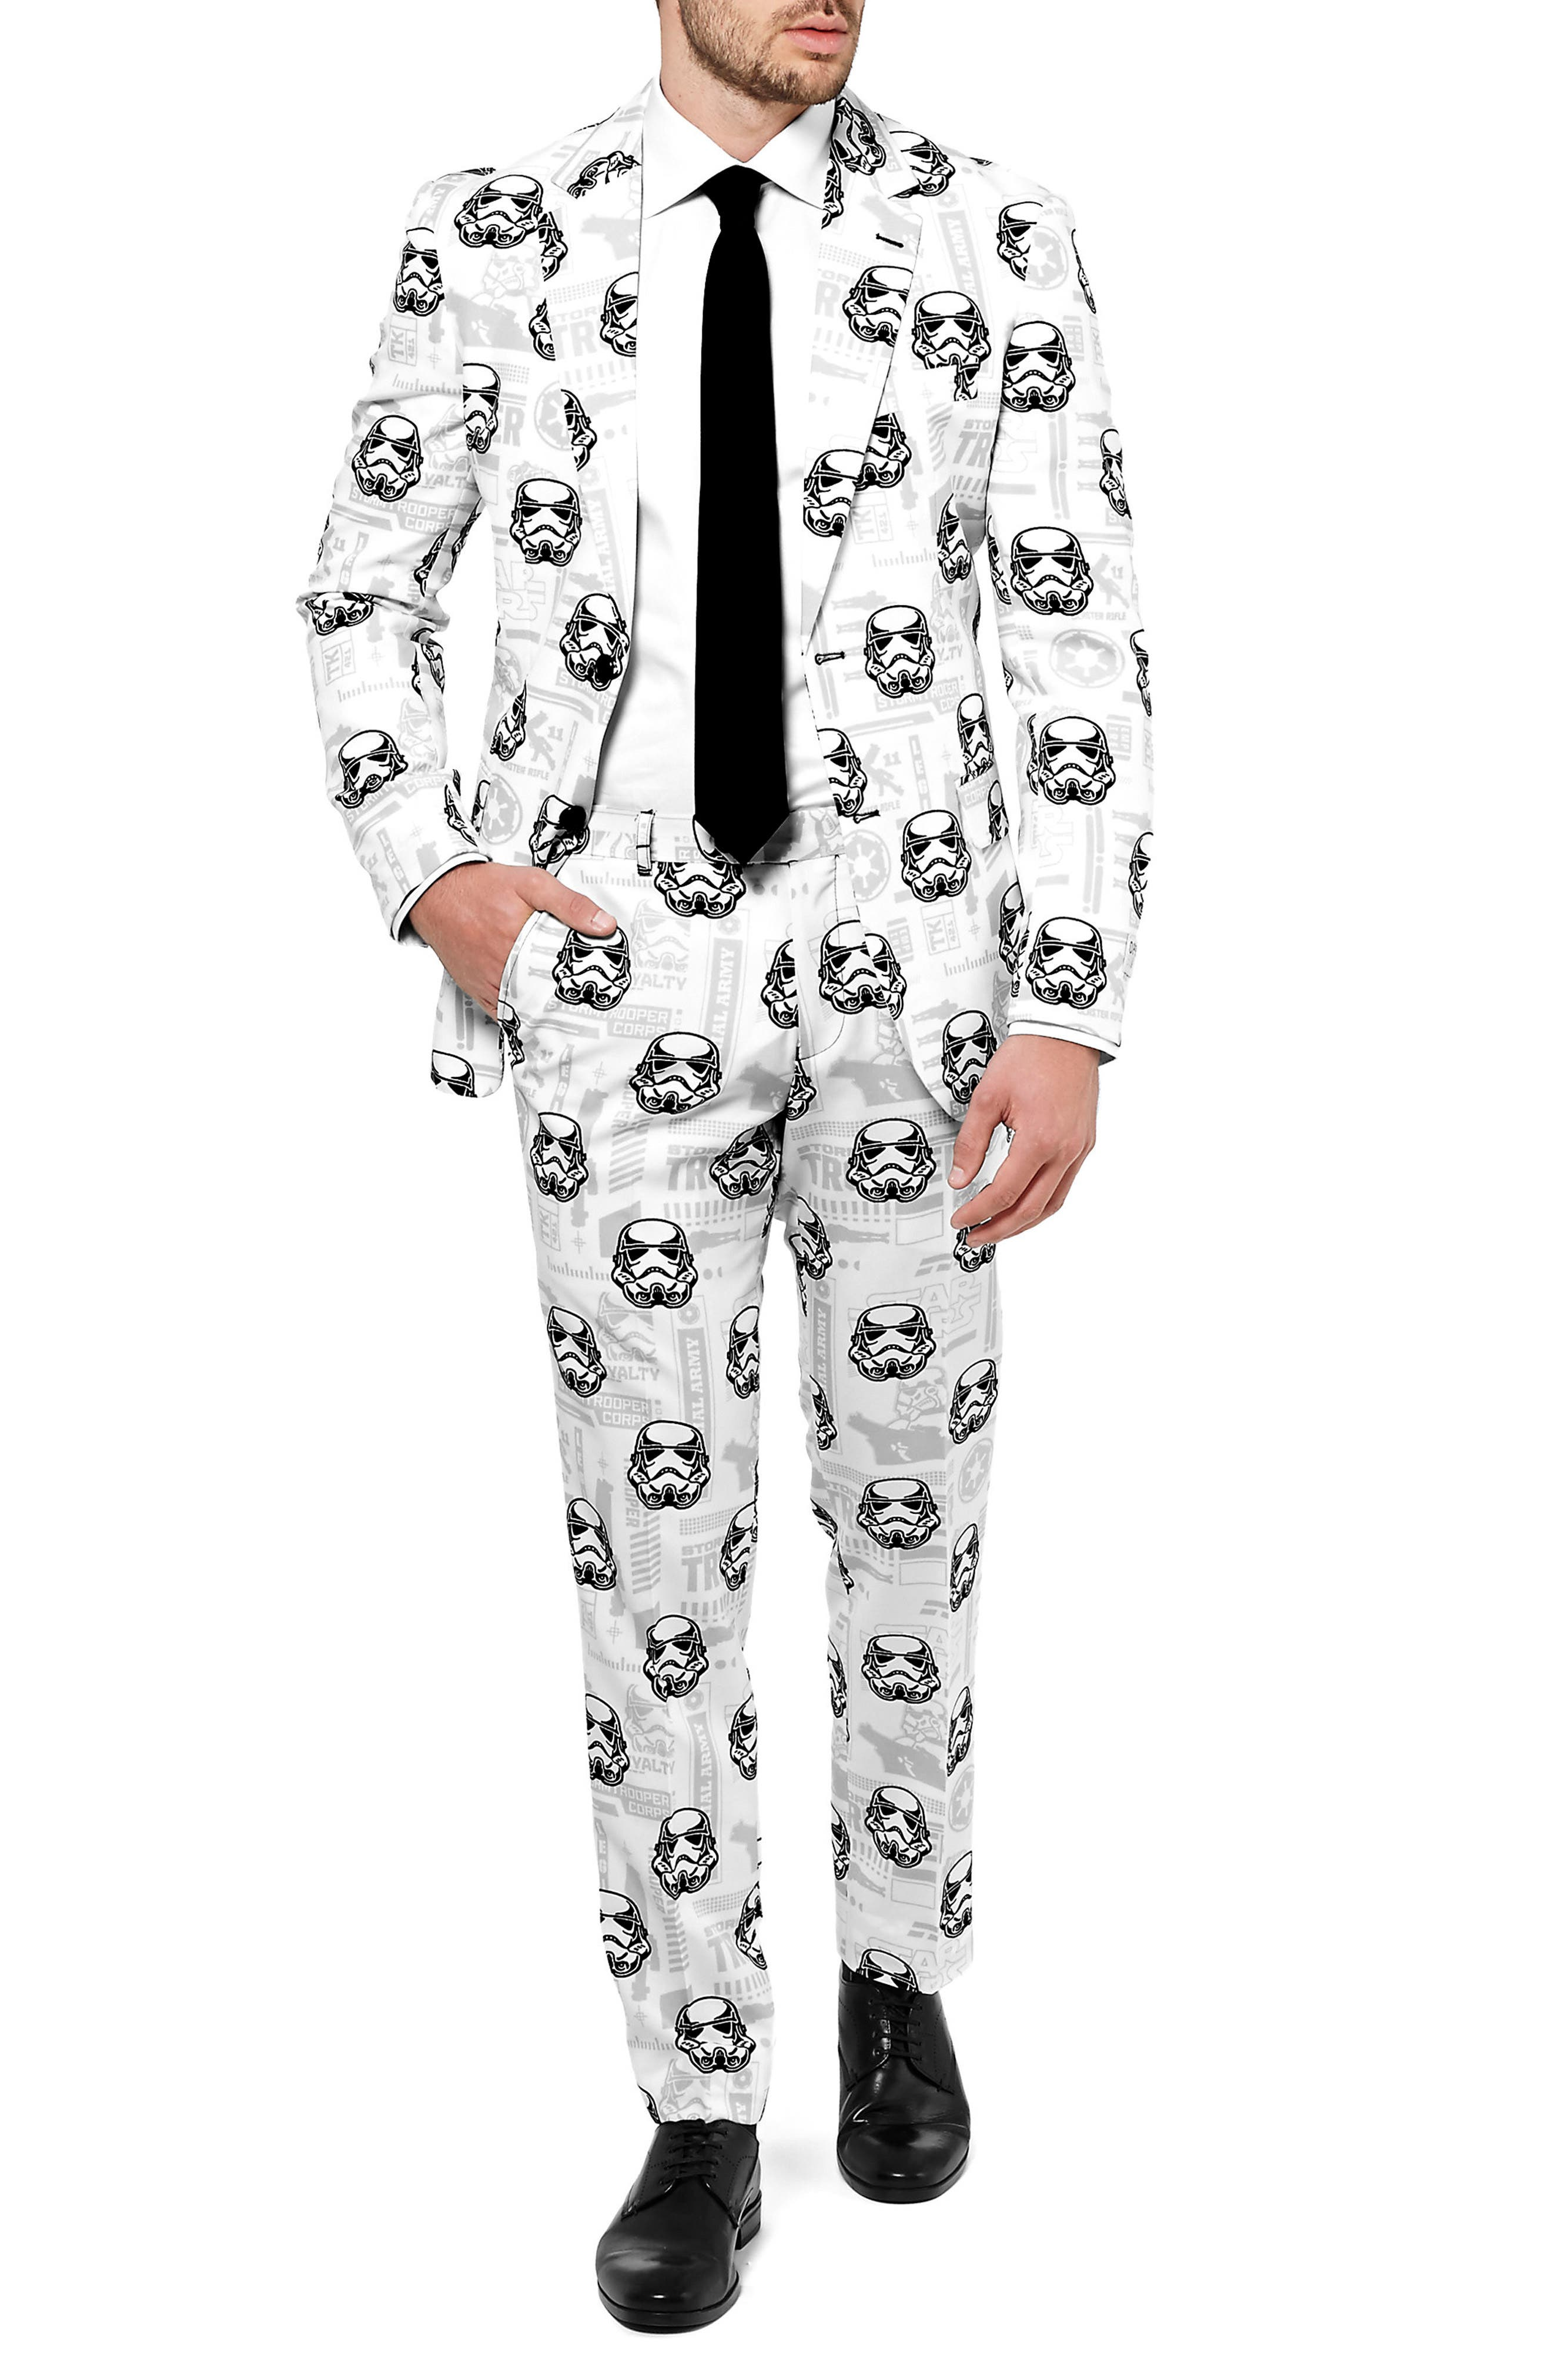 Stormtrooper Trim Fit Two-Piece Suit with Tie,                             Alternate thumbnail 4, color,                             White/ Multi